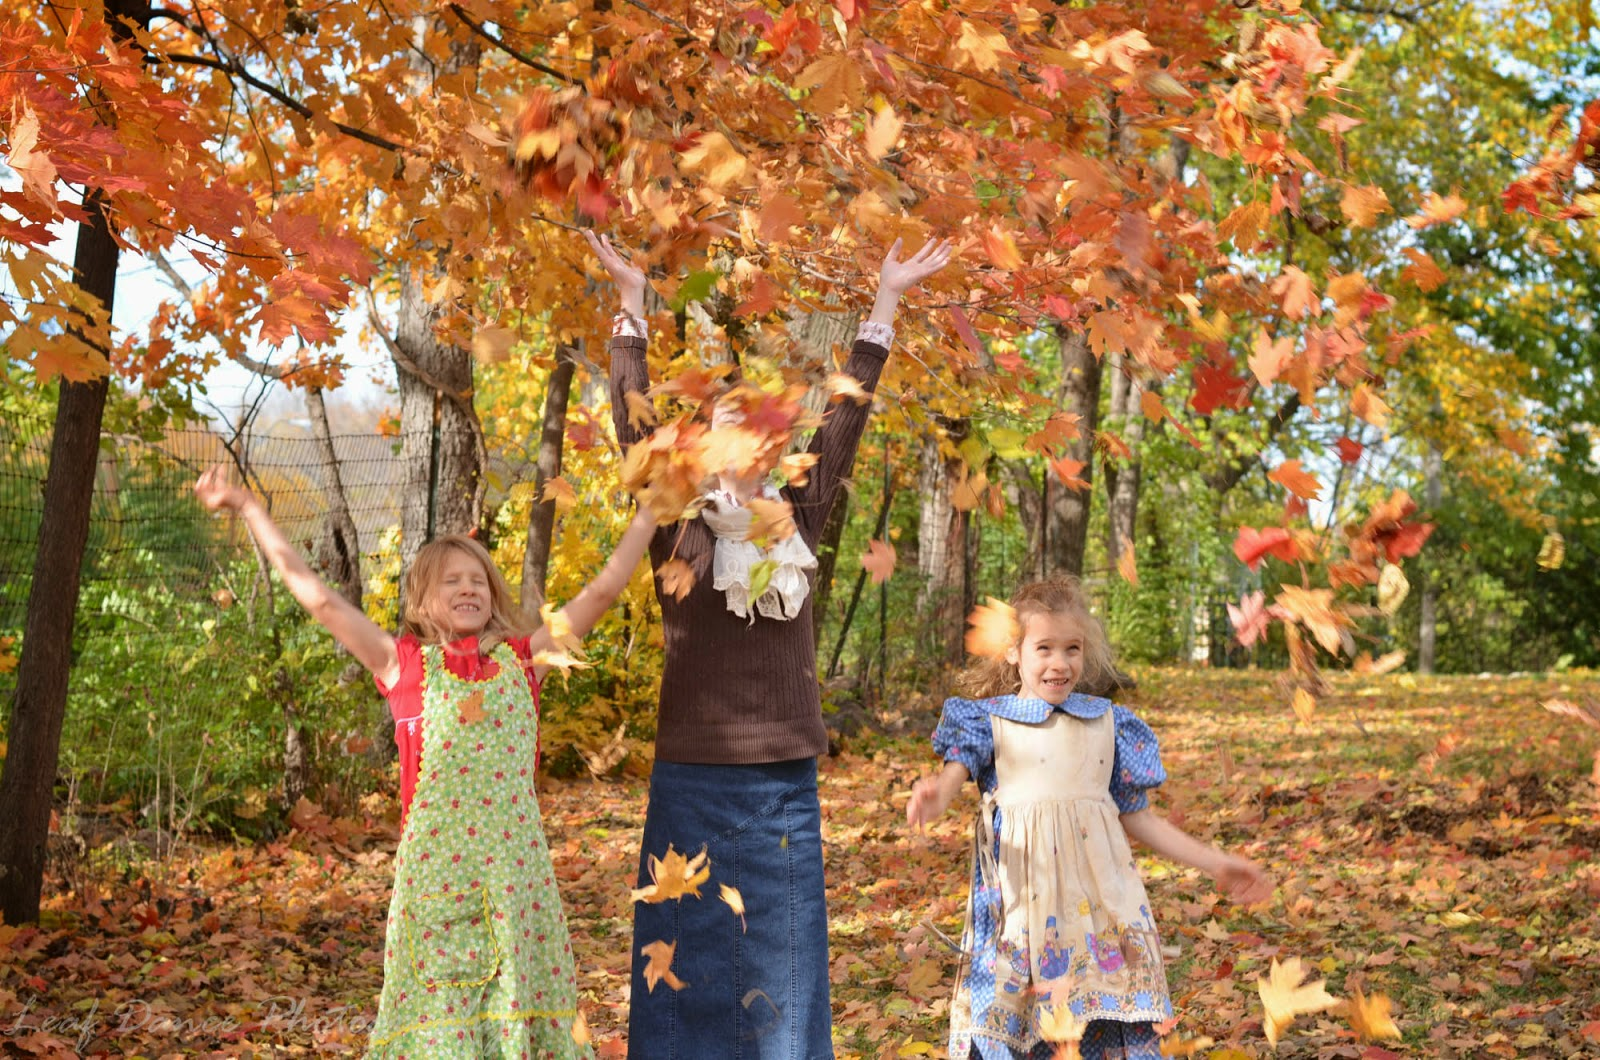 Three Girls throwing leaves into the air